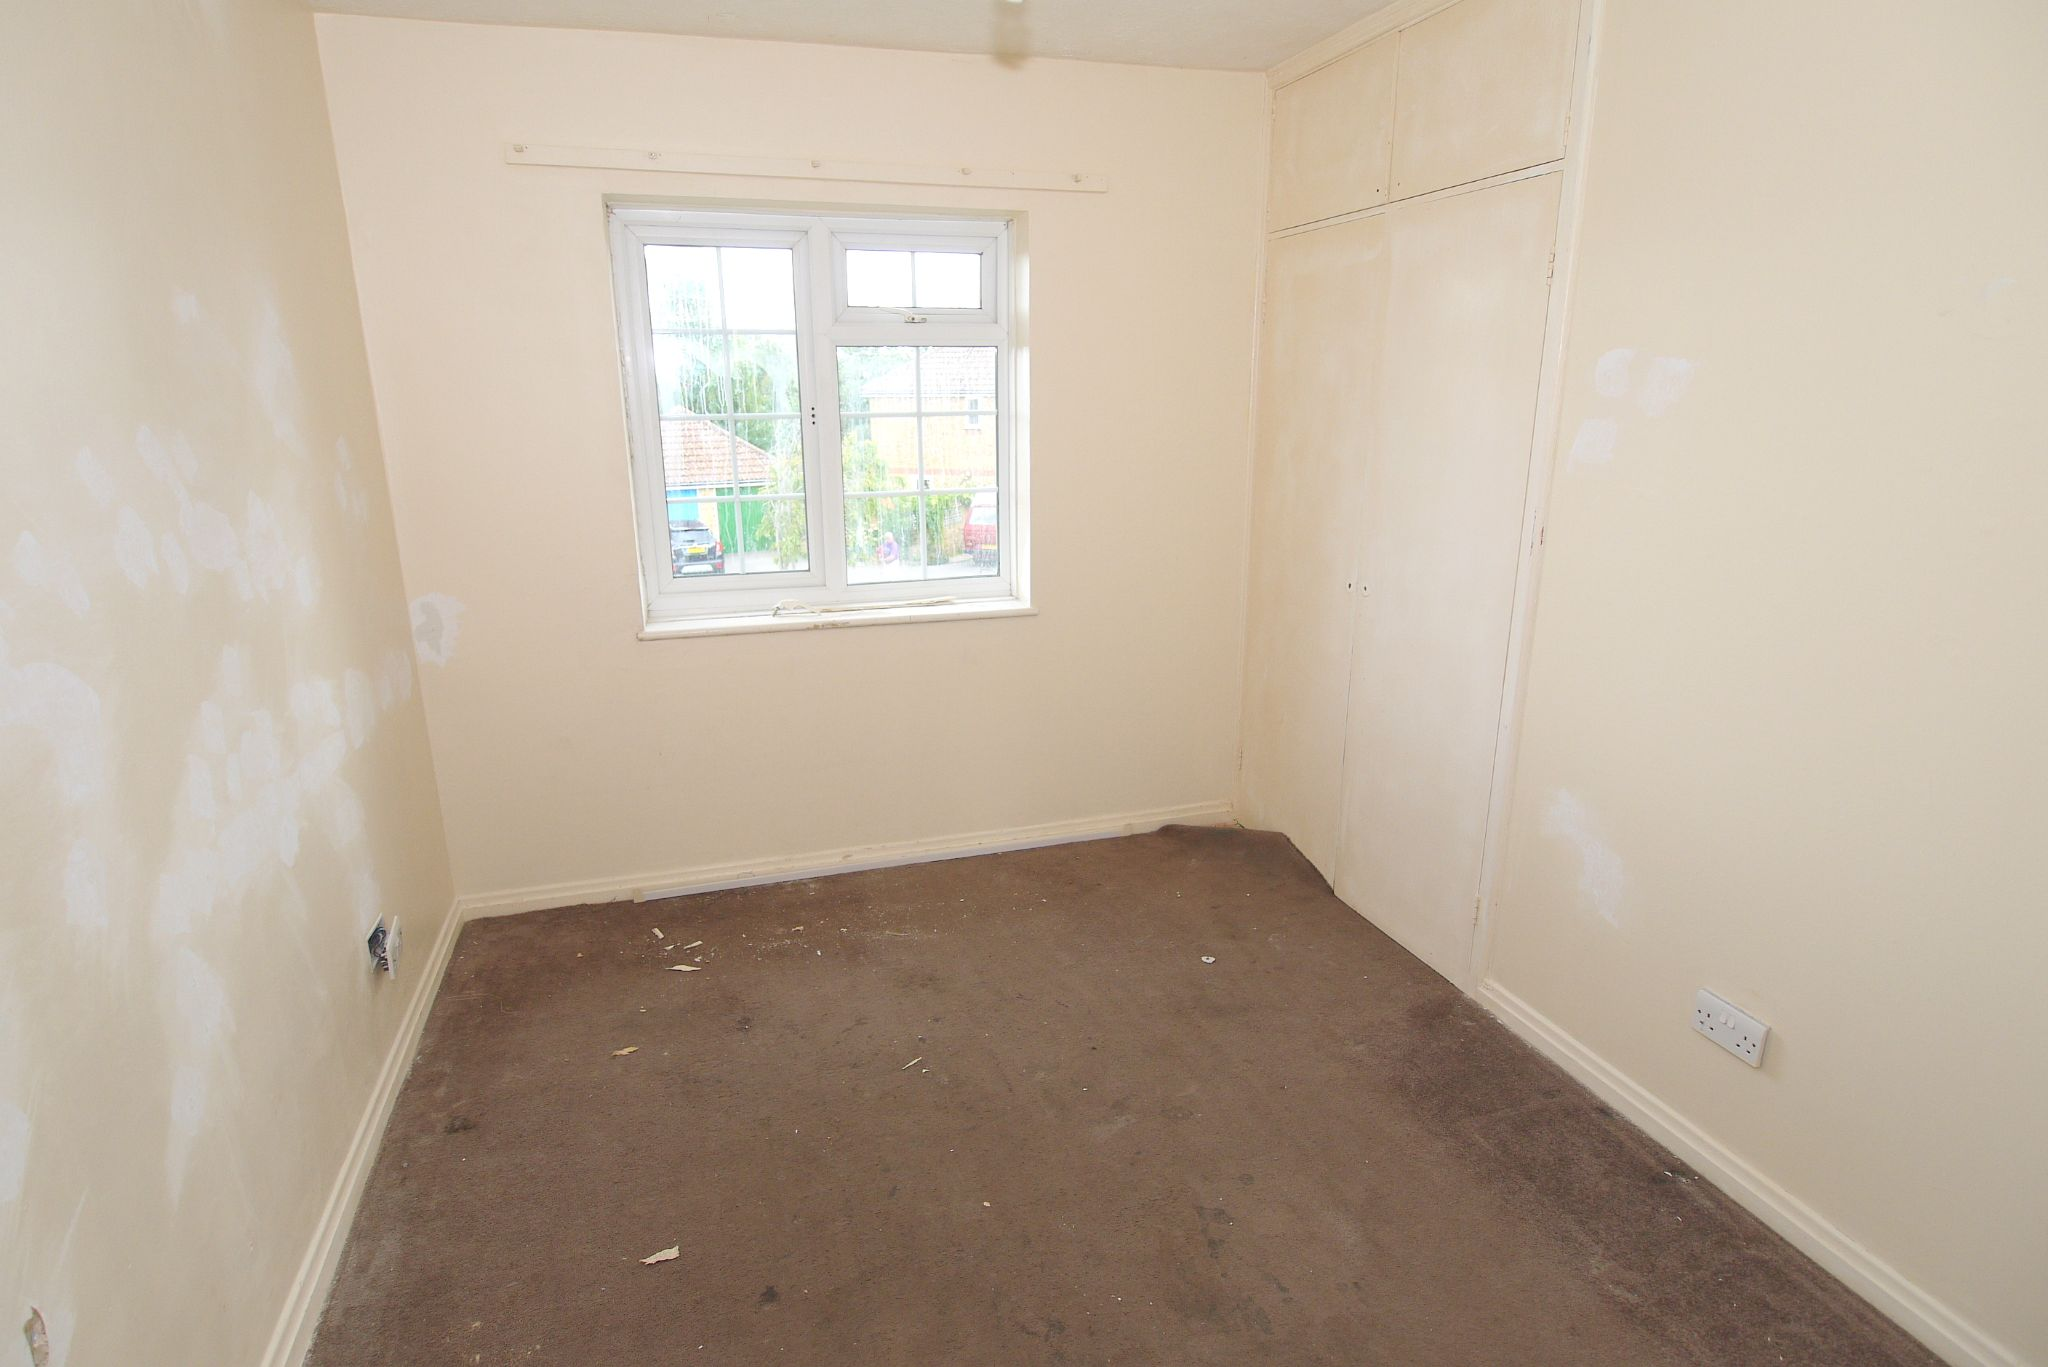 2 bedroom maisonette flat/apartment Sold in Sevenoaks - Photograph 5